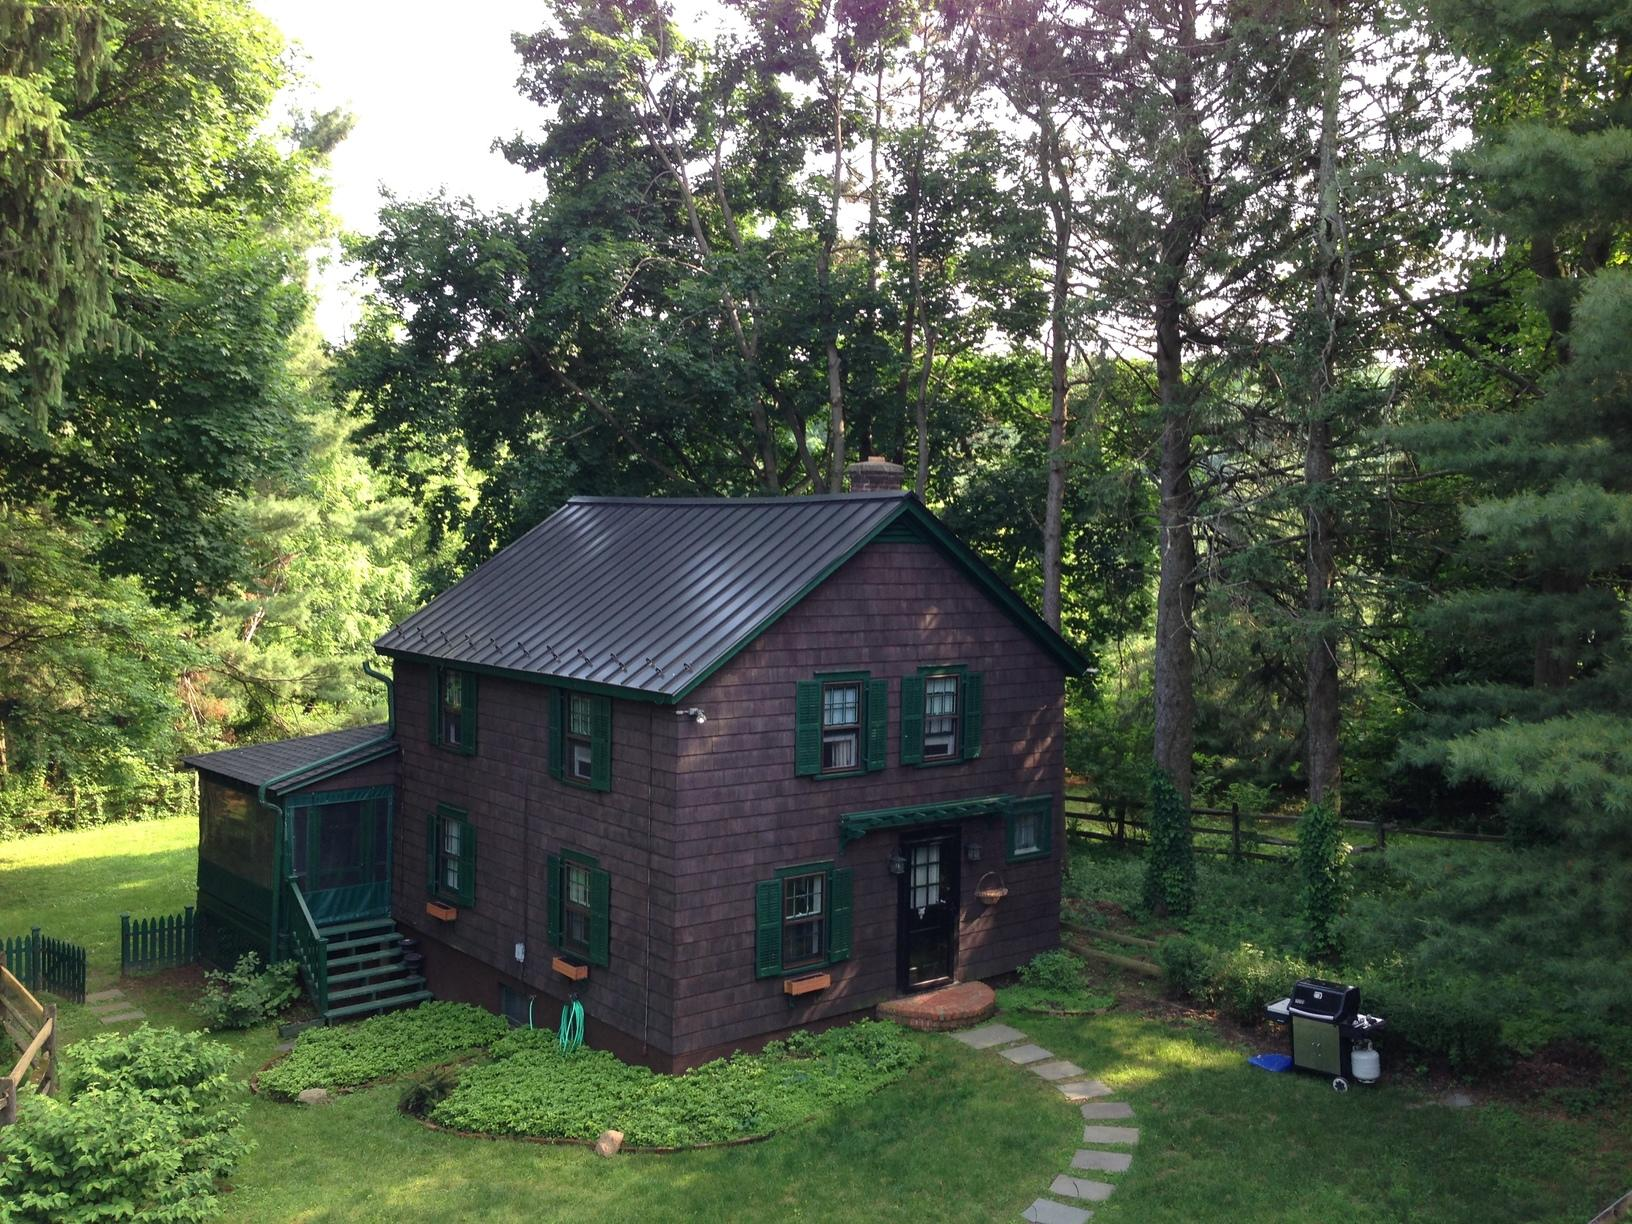 Installing Standing Seam Roof on Cottage in NJ